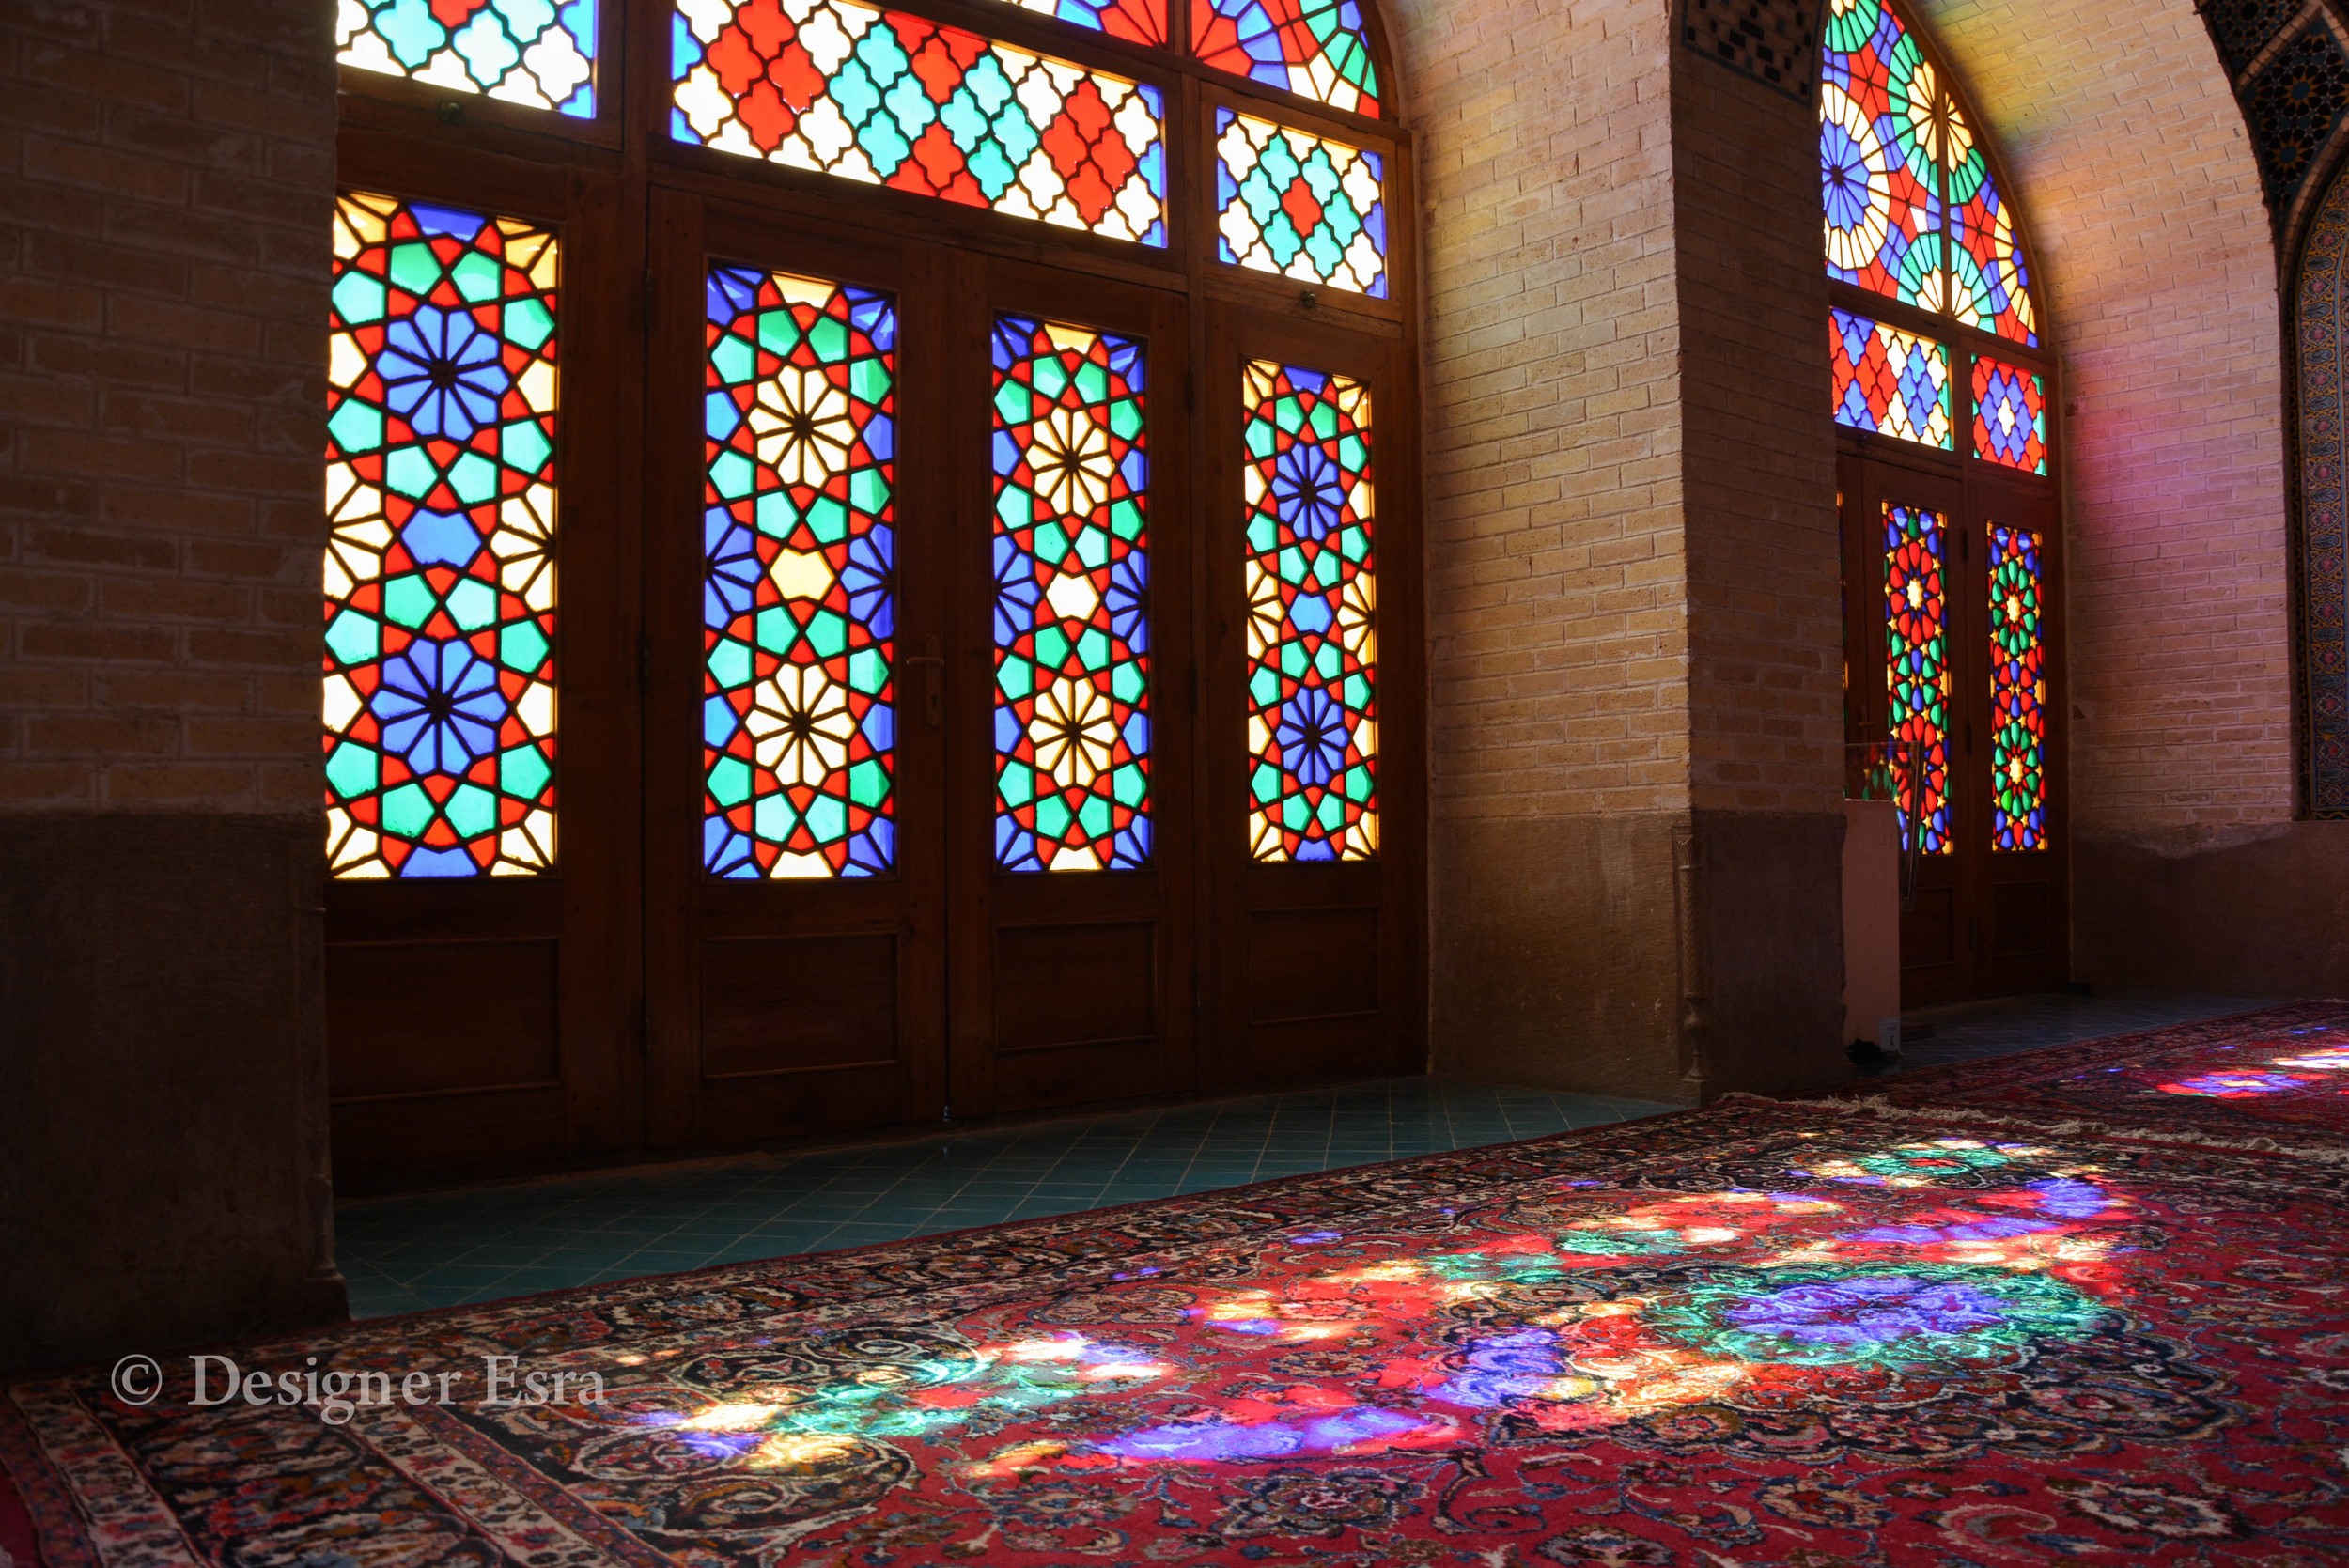 Nasir Almulk Mosque in Shiraz